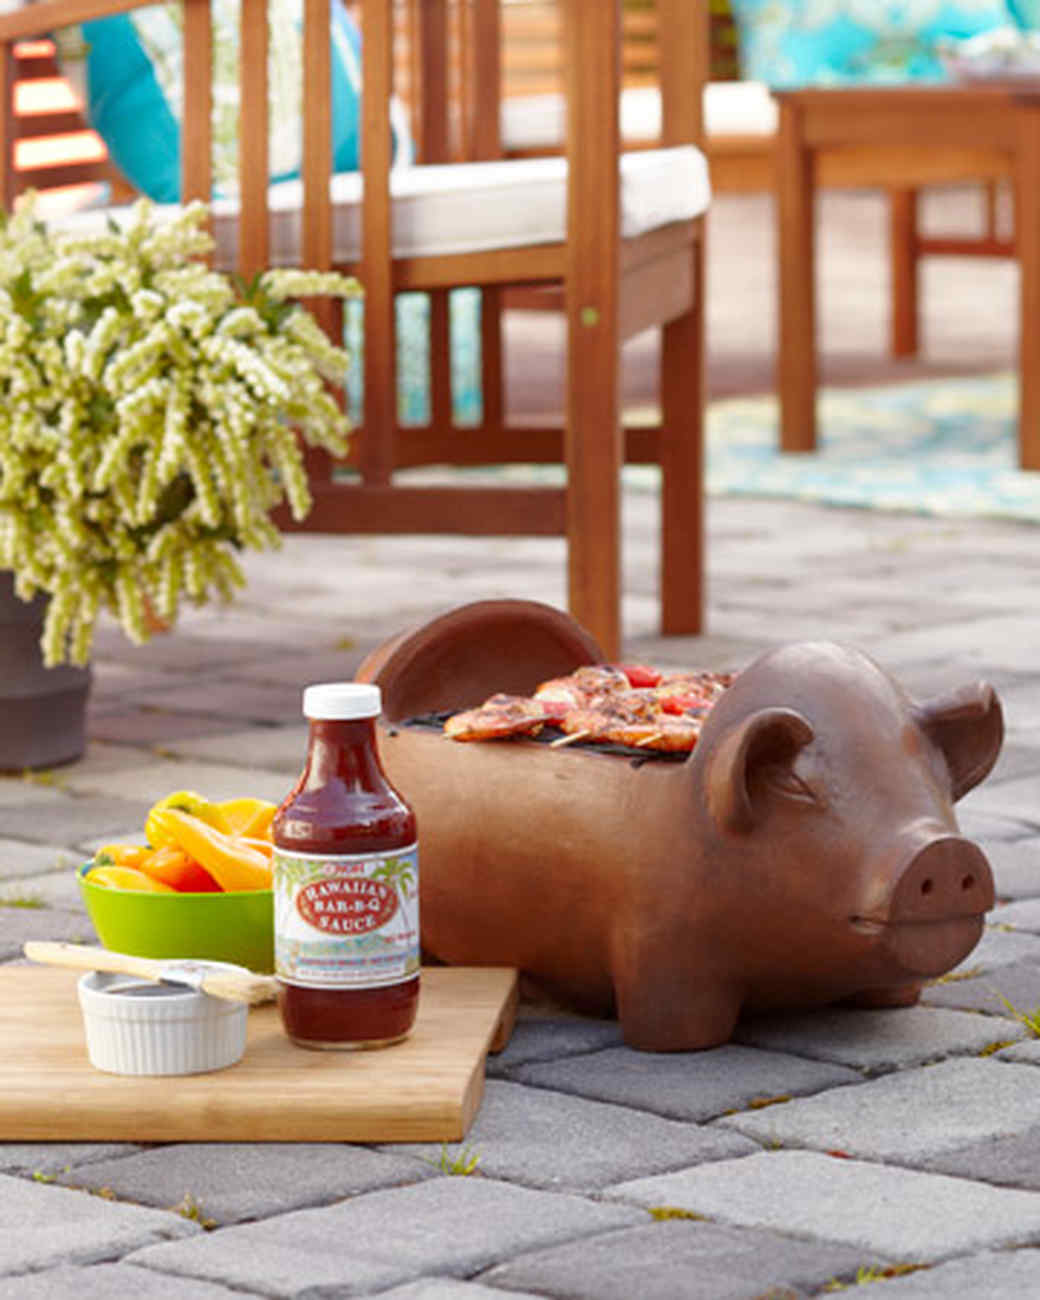 cpwm_smallpigterracottagrill_6.jpg